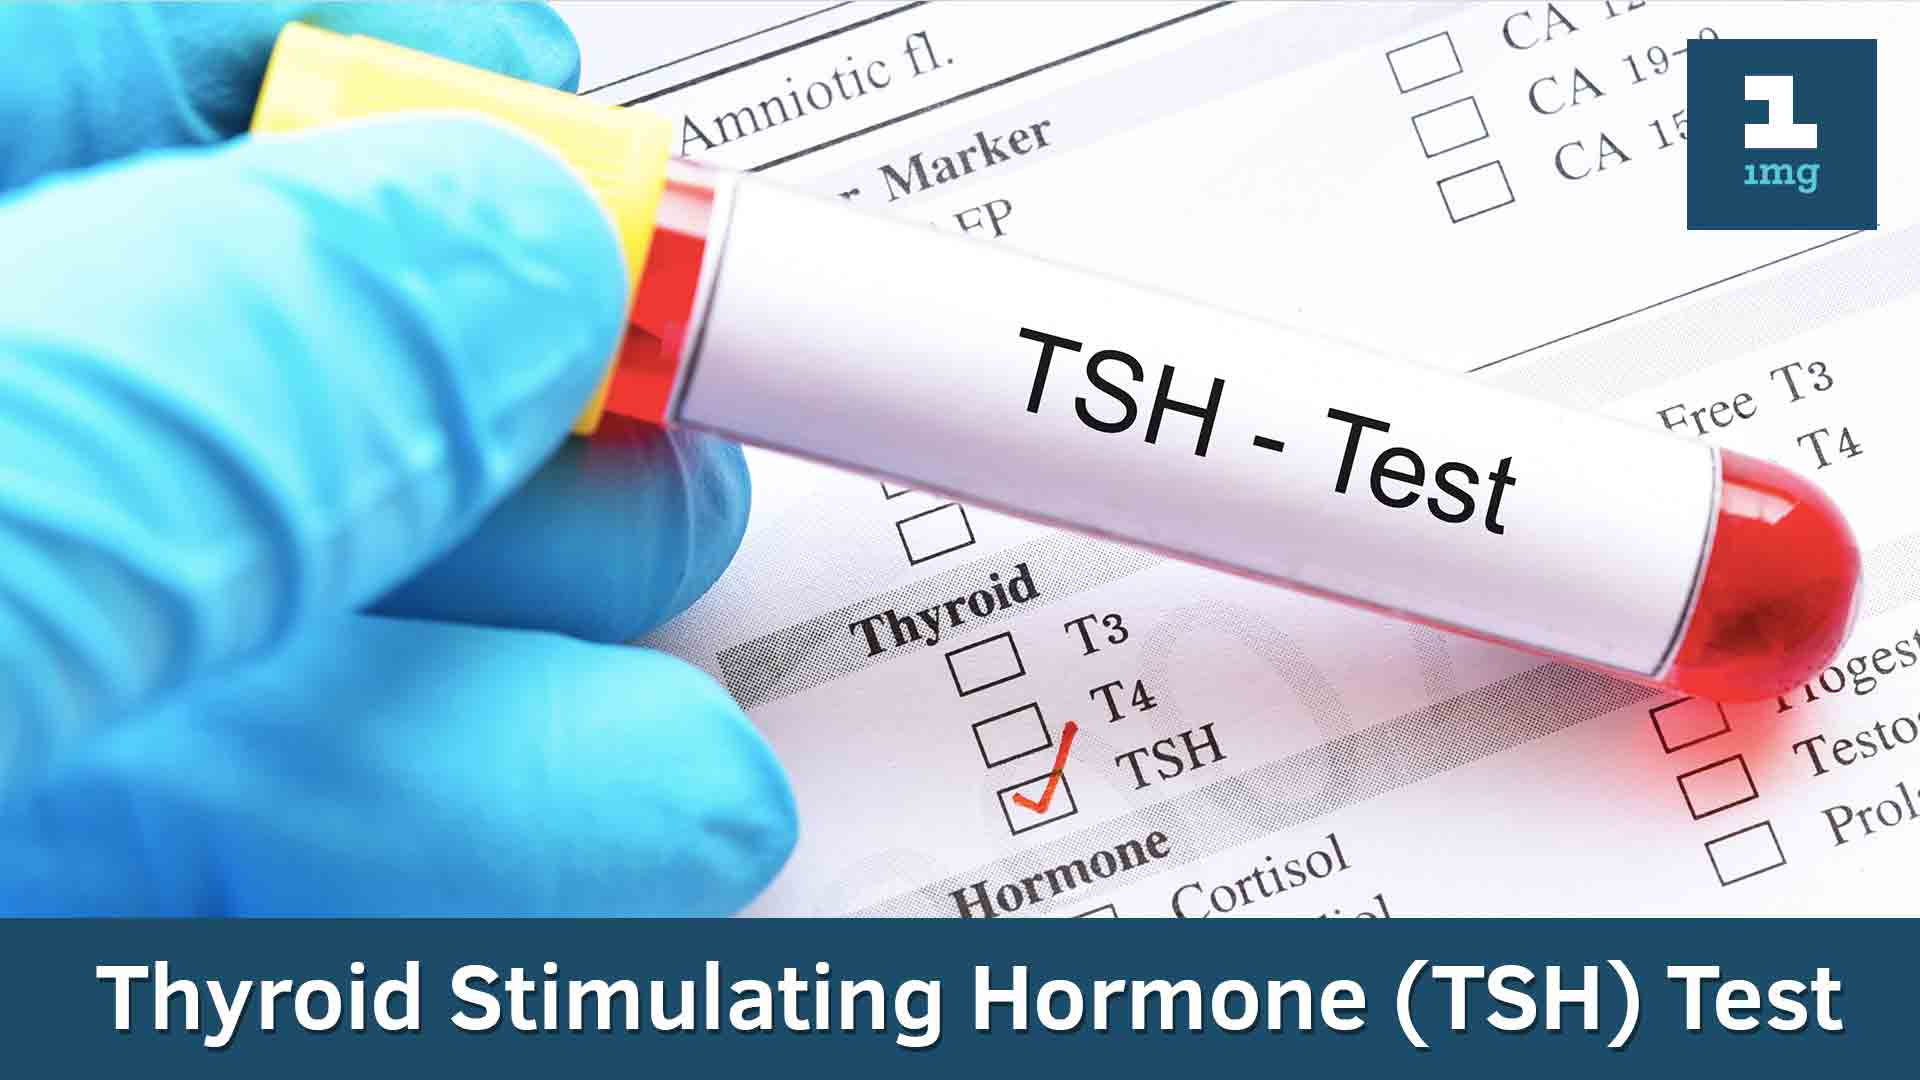 Thyroid Stimulating Hormone